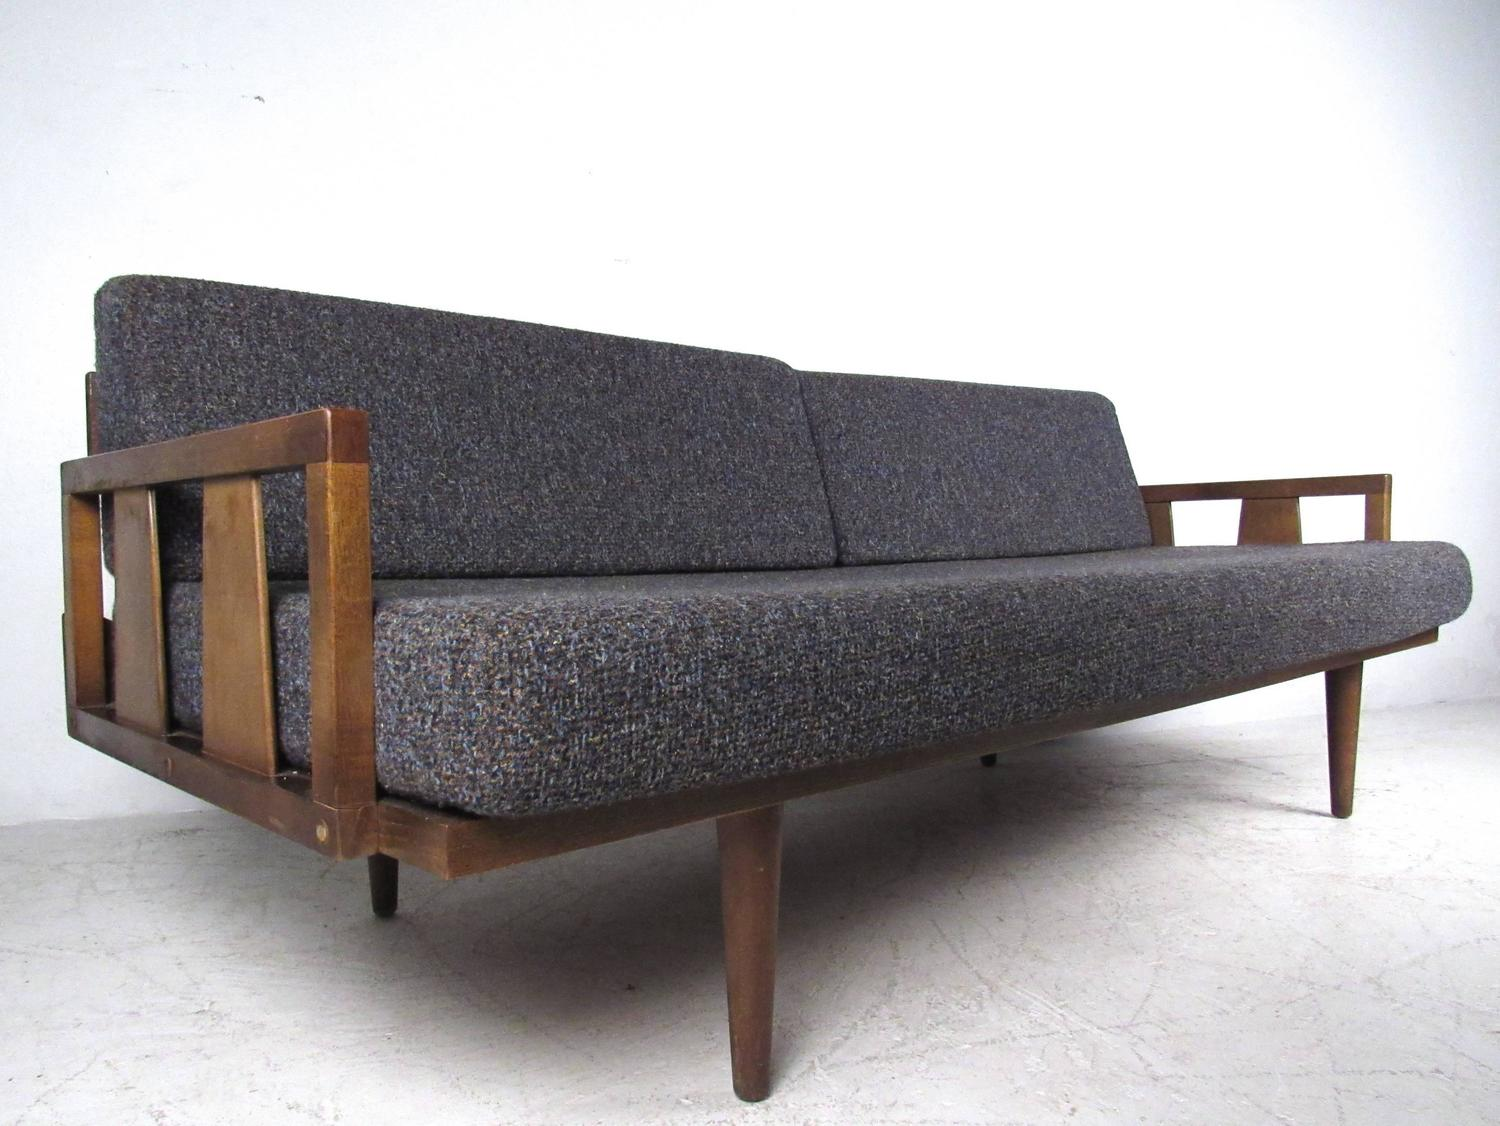 Unique mid century modern daybed sofa at 1stdibs for Modern day furniture